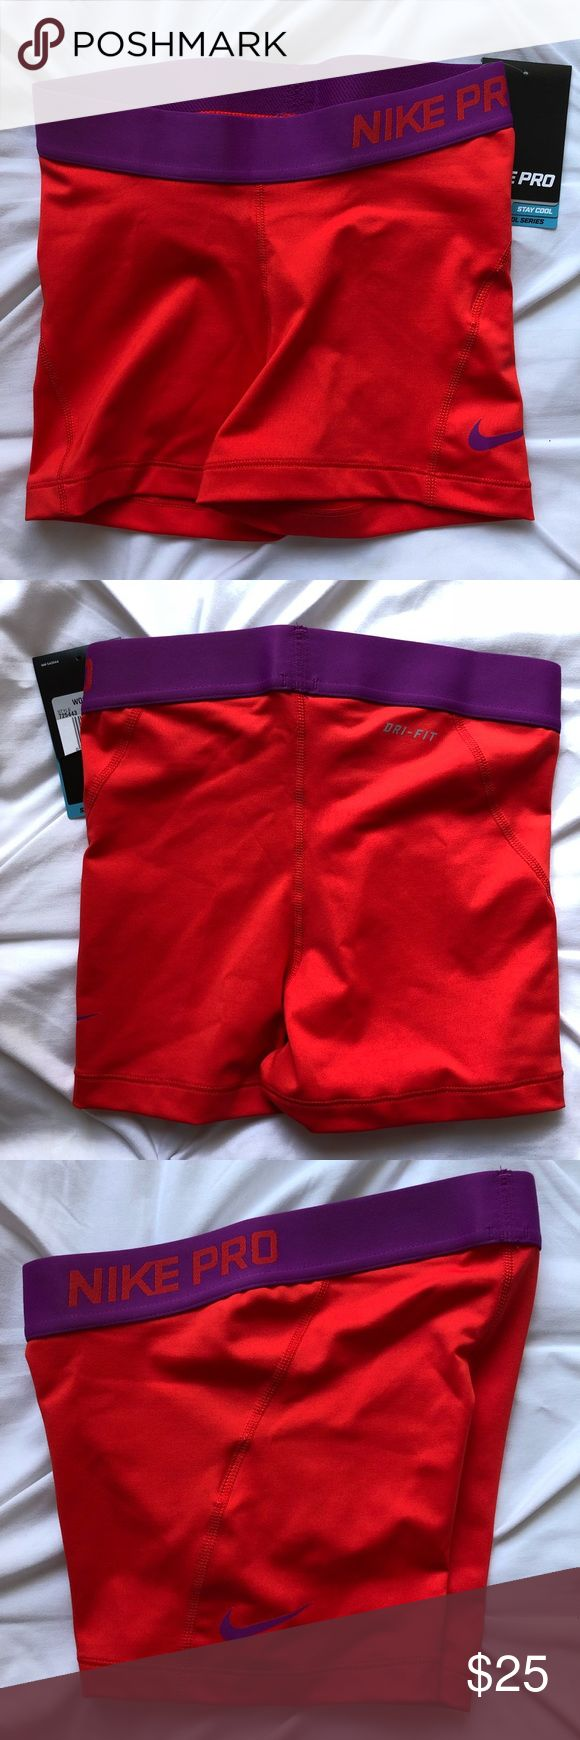 "Women's Nike Pro Compression Shorts Women's Nike Pro Compression Shorts Inseam 2.5"" - 3""  Red with purple color Women's XS  NWT  Retail Price $28  🚫 No trades 📦 Same or next business day shipping!  ✨ Open to reasonable offers 💡 Bundle to save on shipping Nike Shorts"